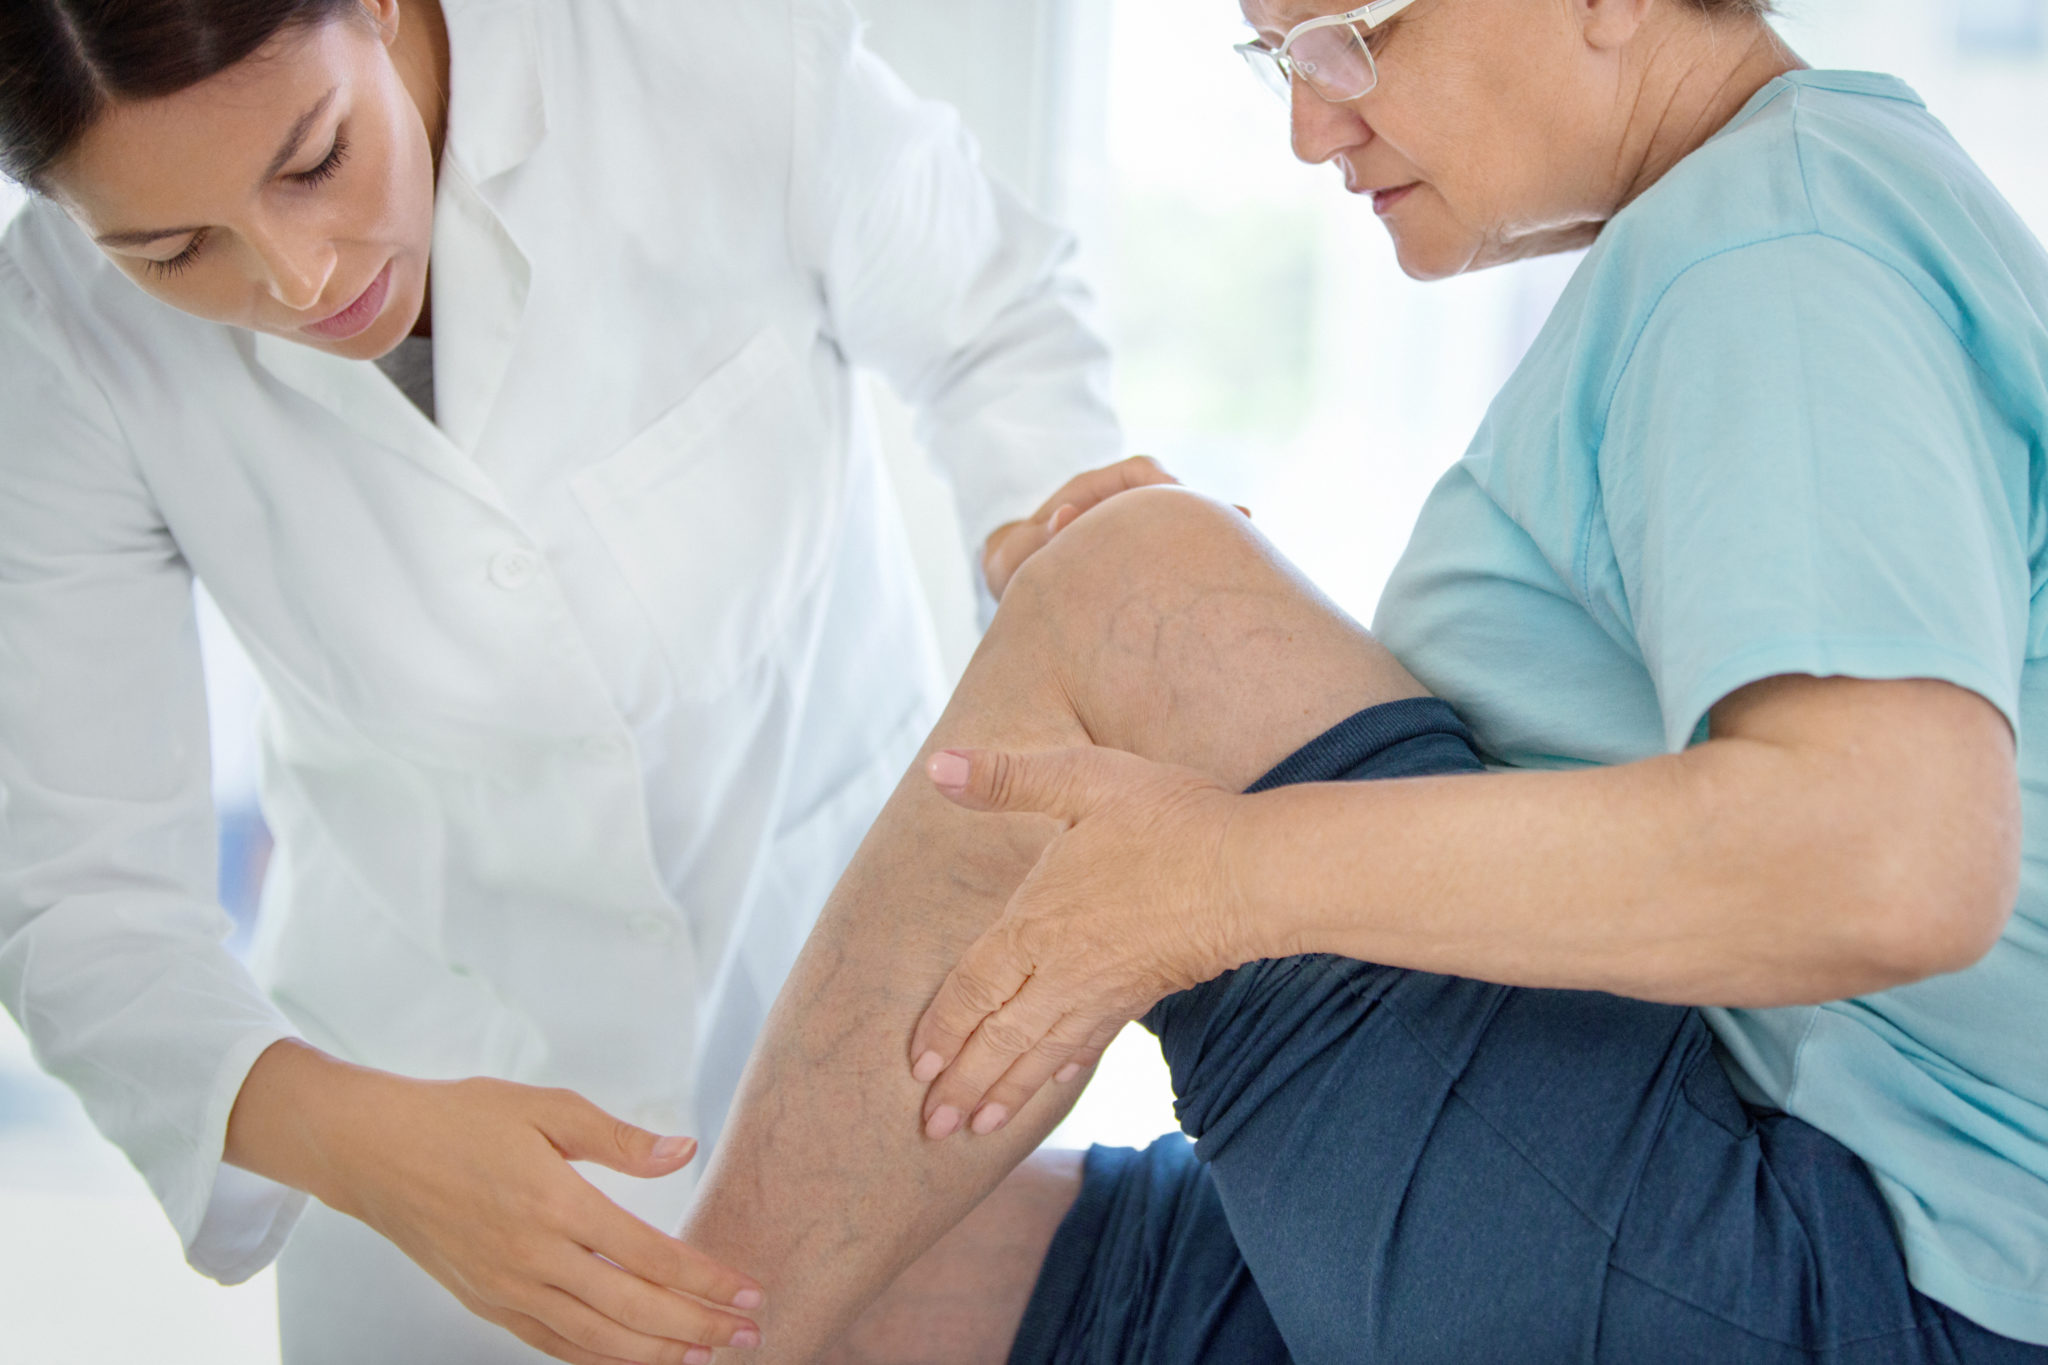 Closeup side view of female doctor massaging legs and calves of a senior female patient with visible varicose veins.